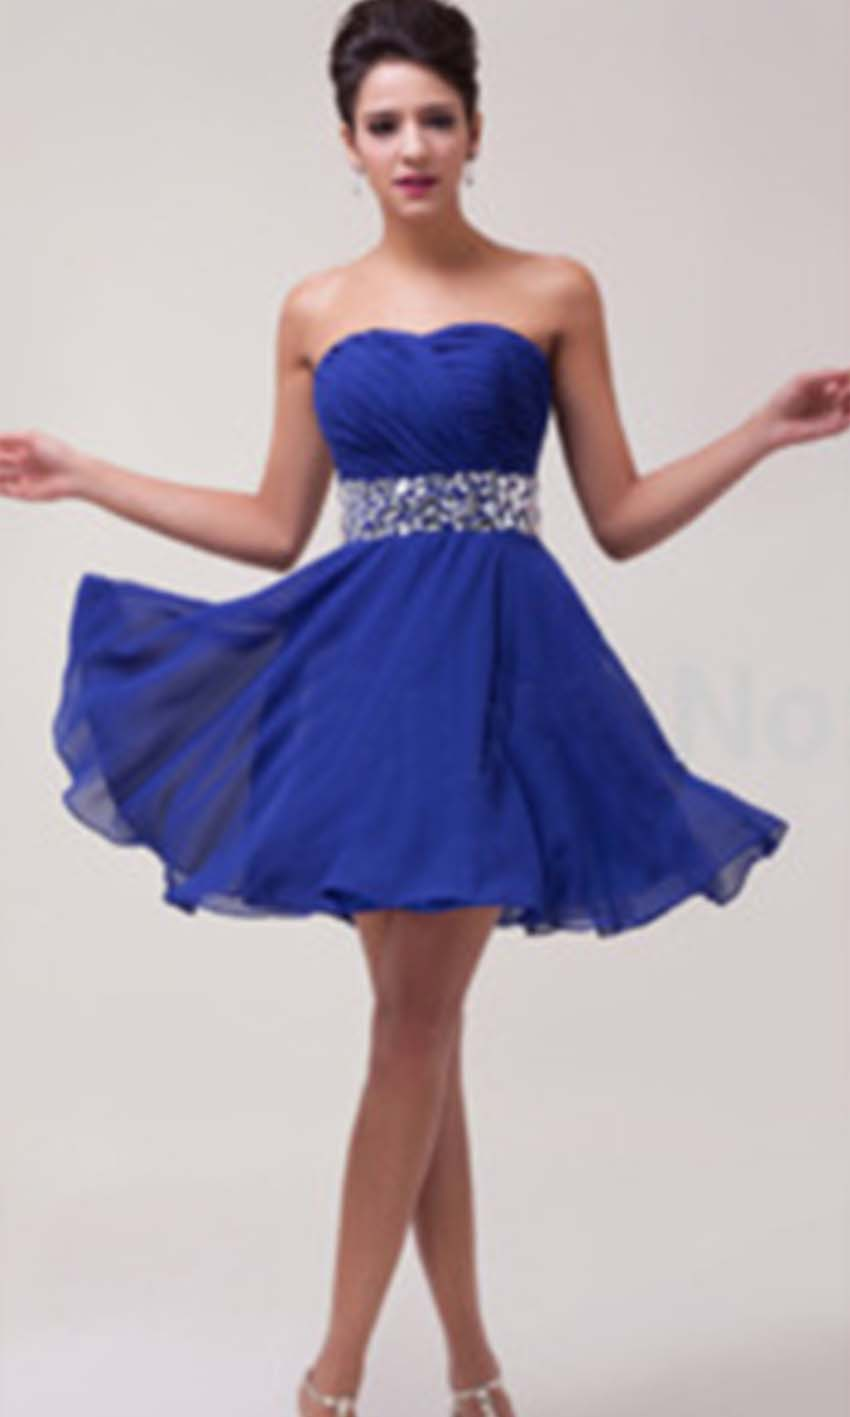 Free shipping on Prom Dresses in Weddings amp Events and